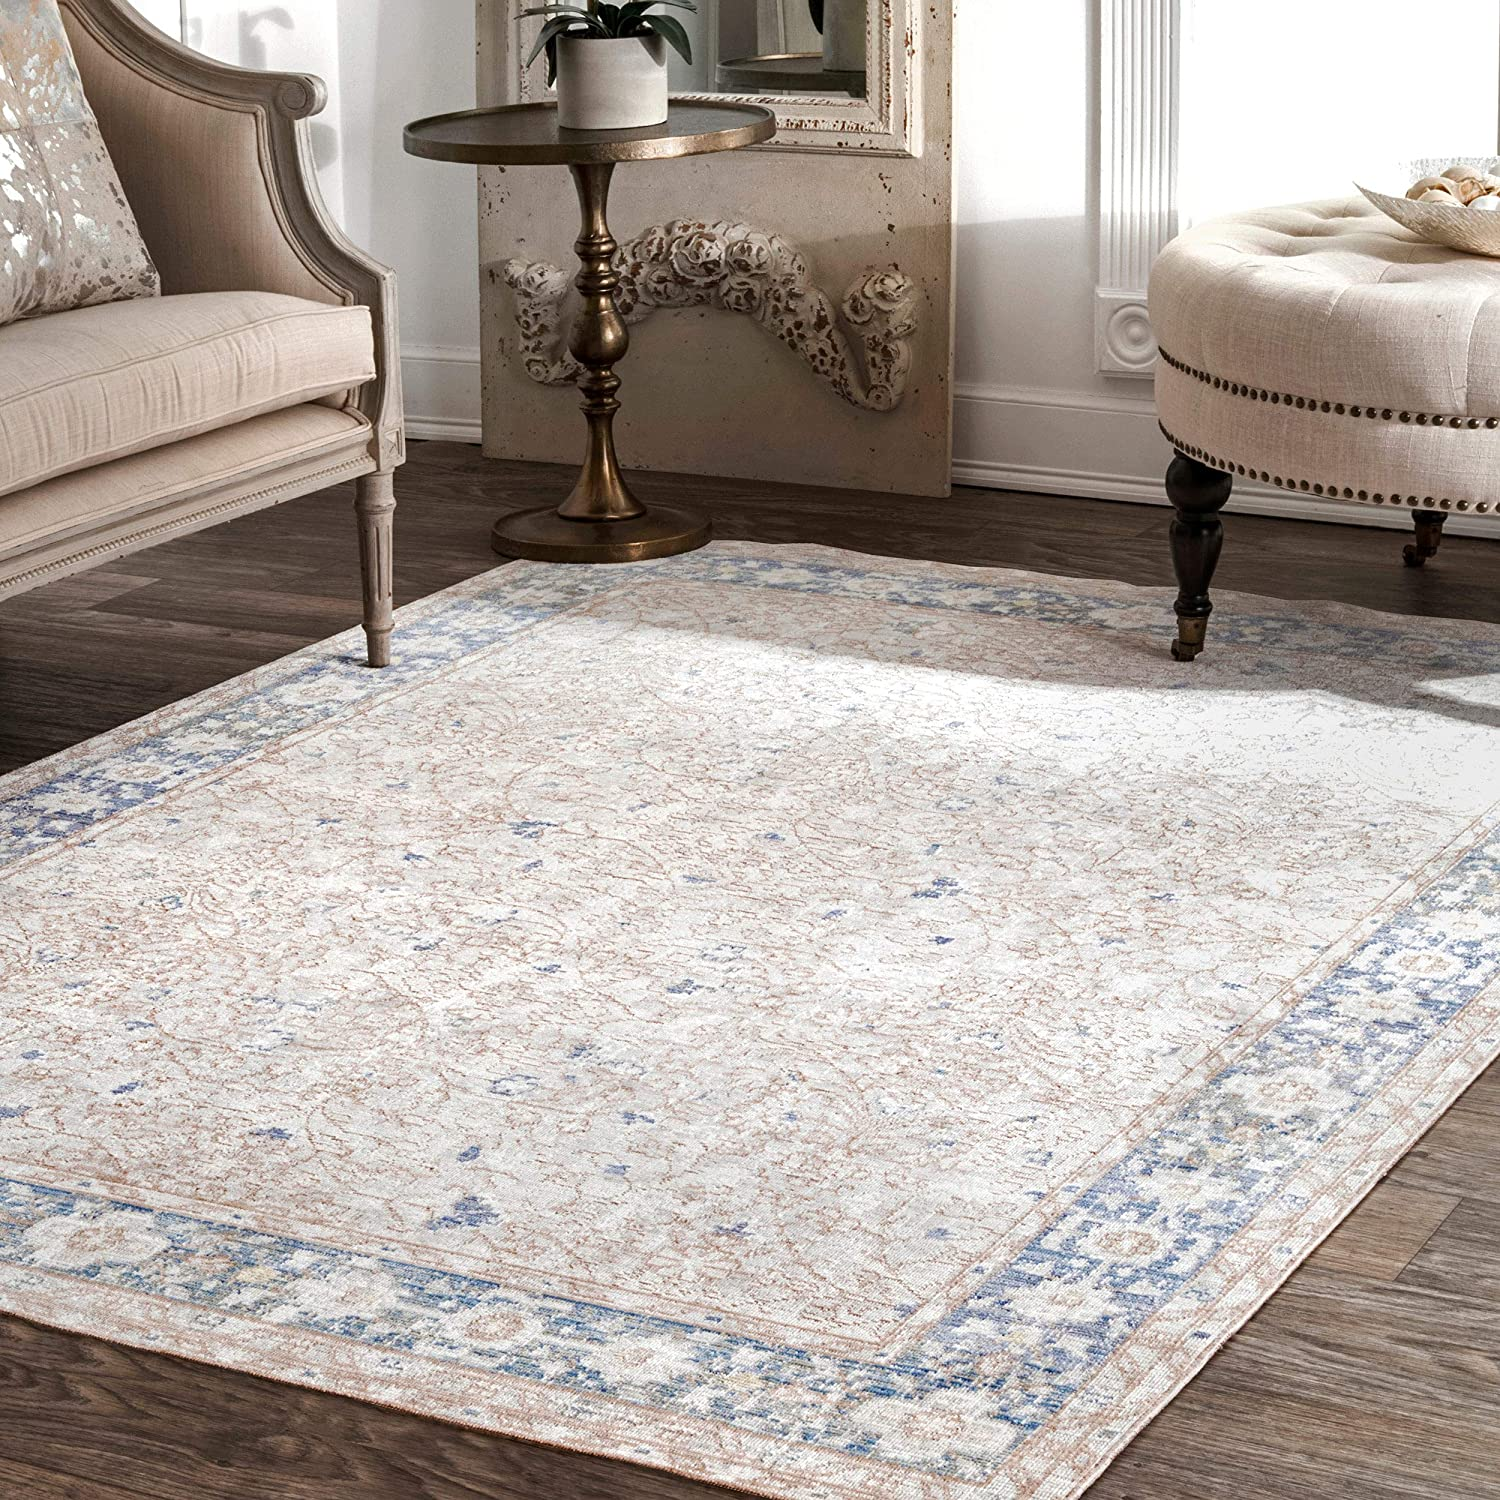 nuLOOM Karla Vintage Area Rug Now free shipping 4' Blue National uniform free shipping 6